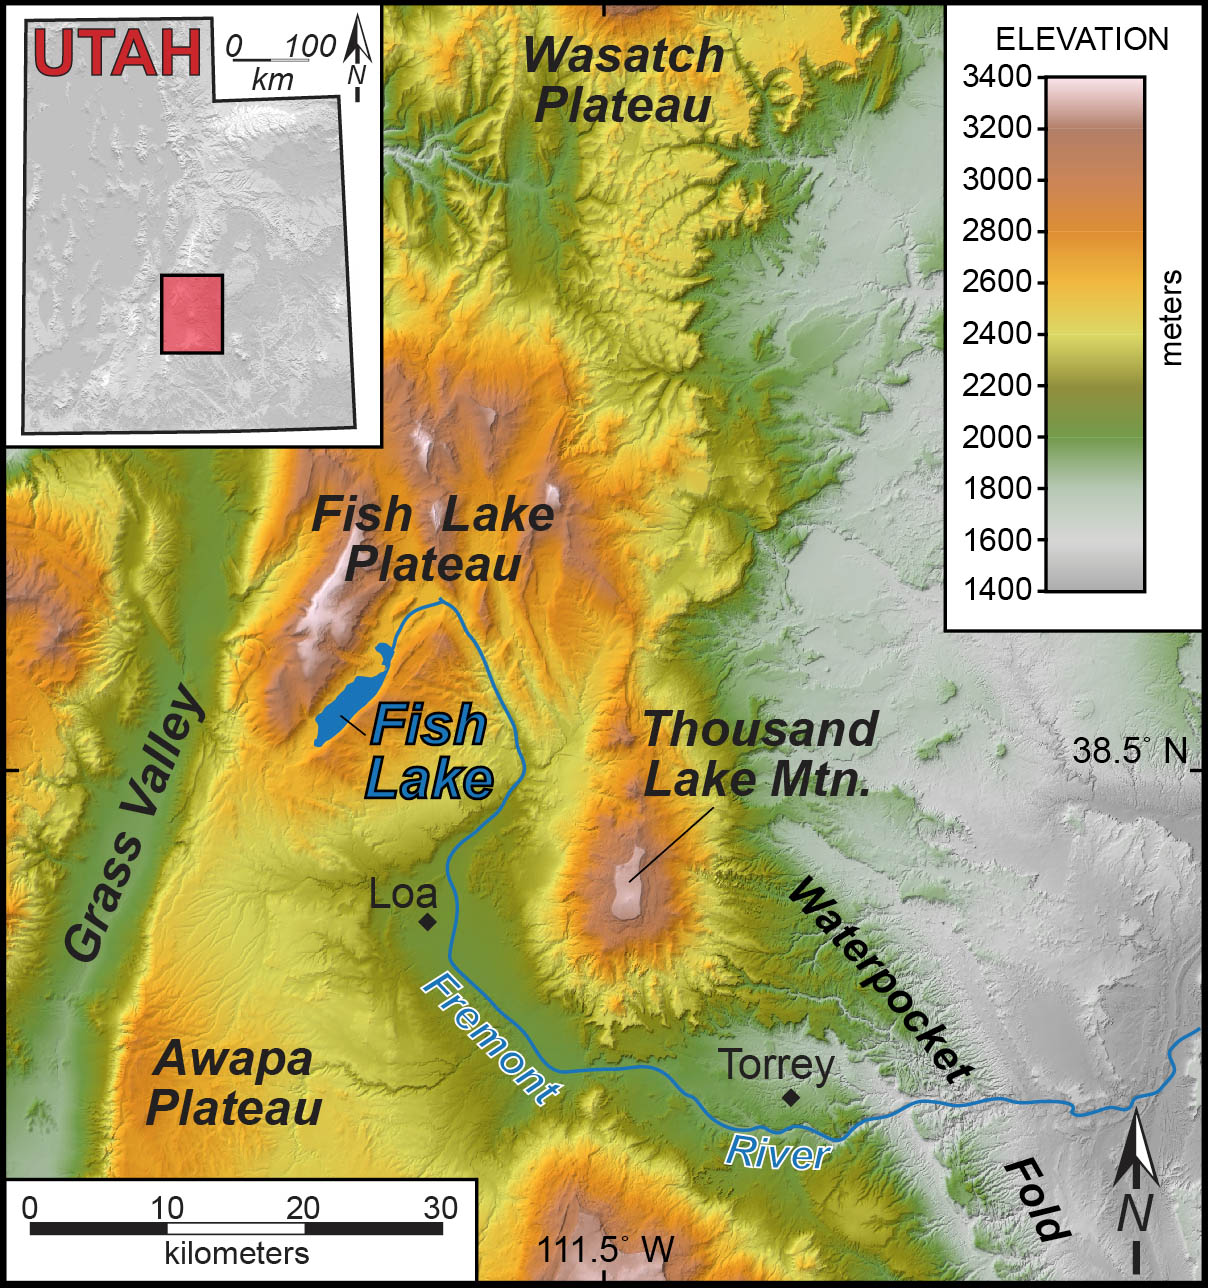 Shaded elevation map of south-central Utah, illustrating the location of Fish Lake and the High Plateaus region.